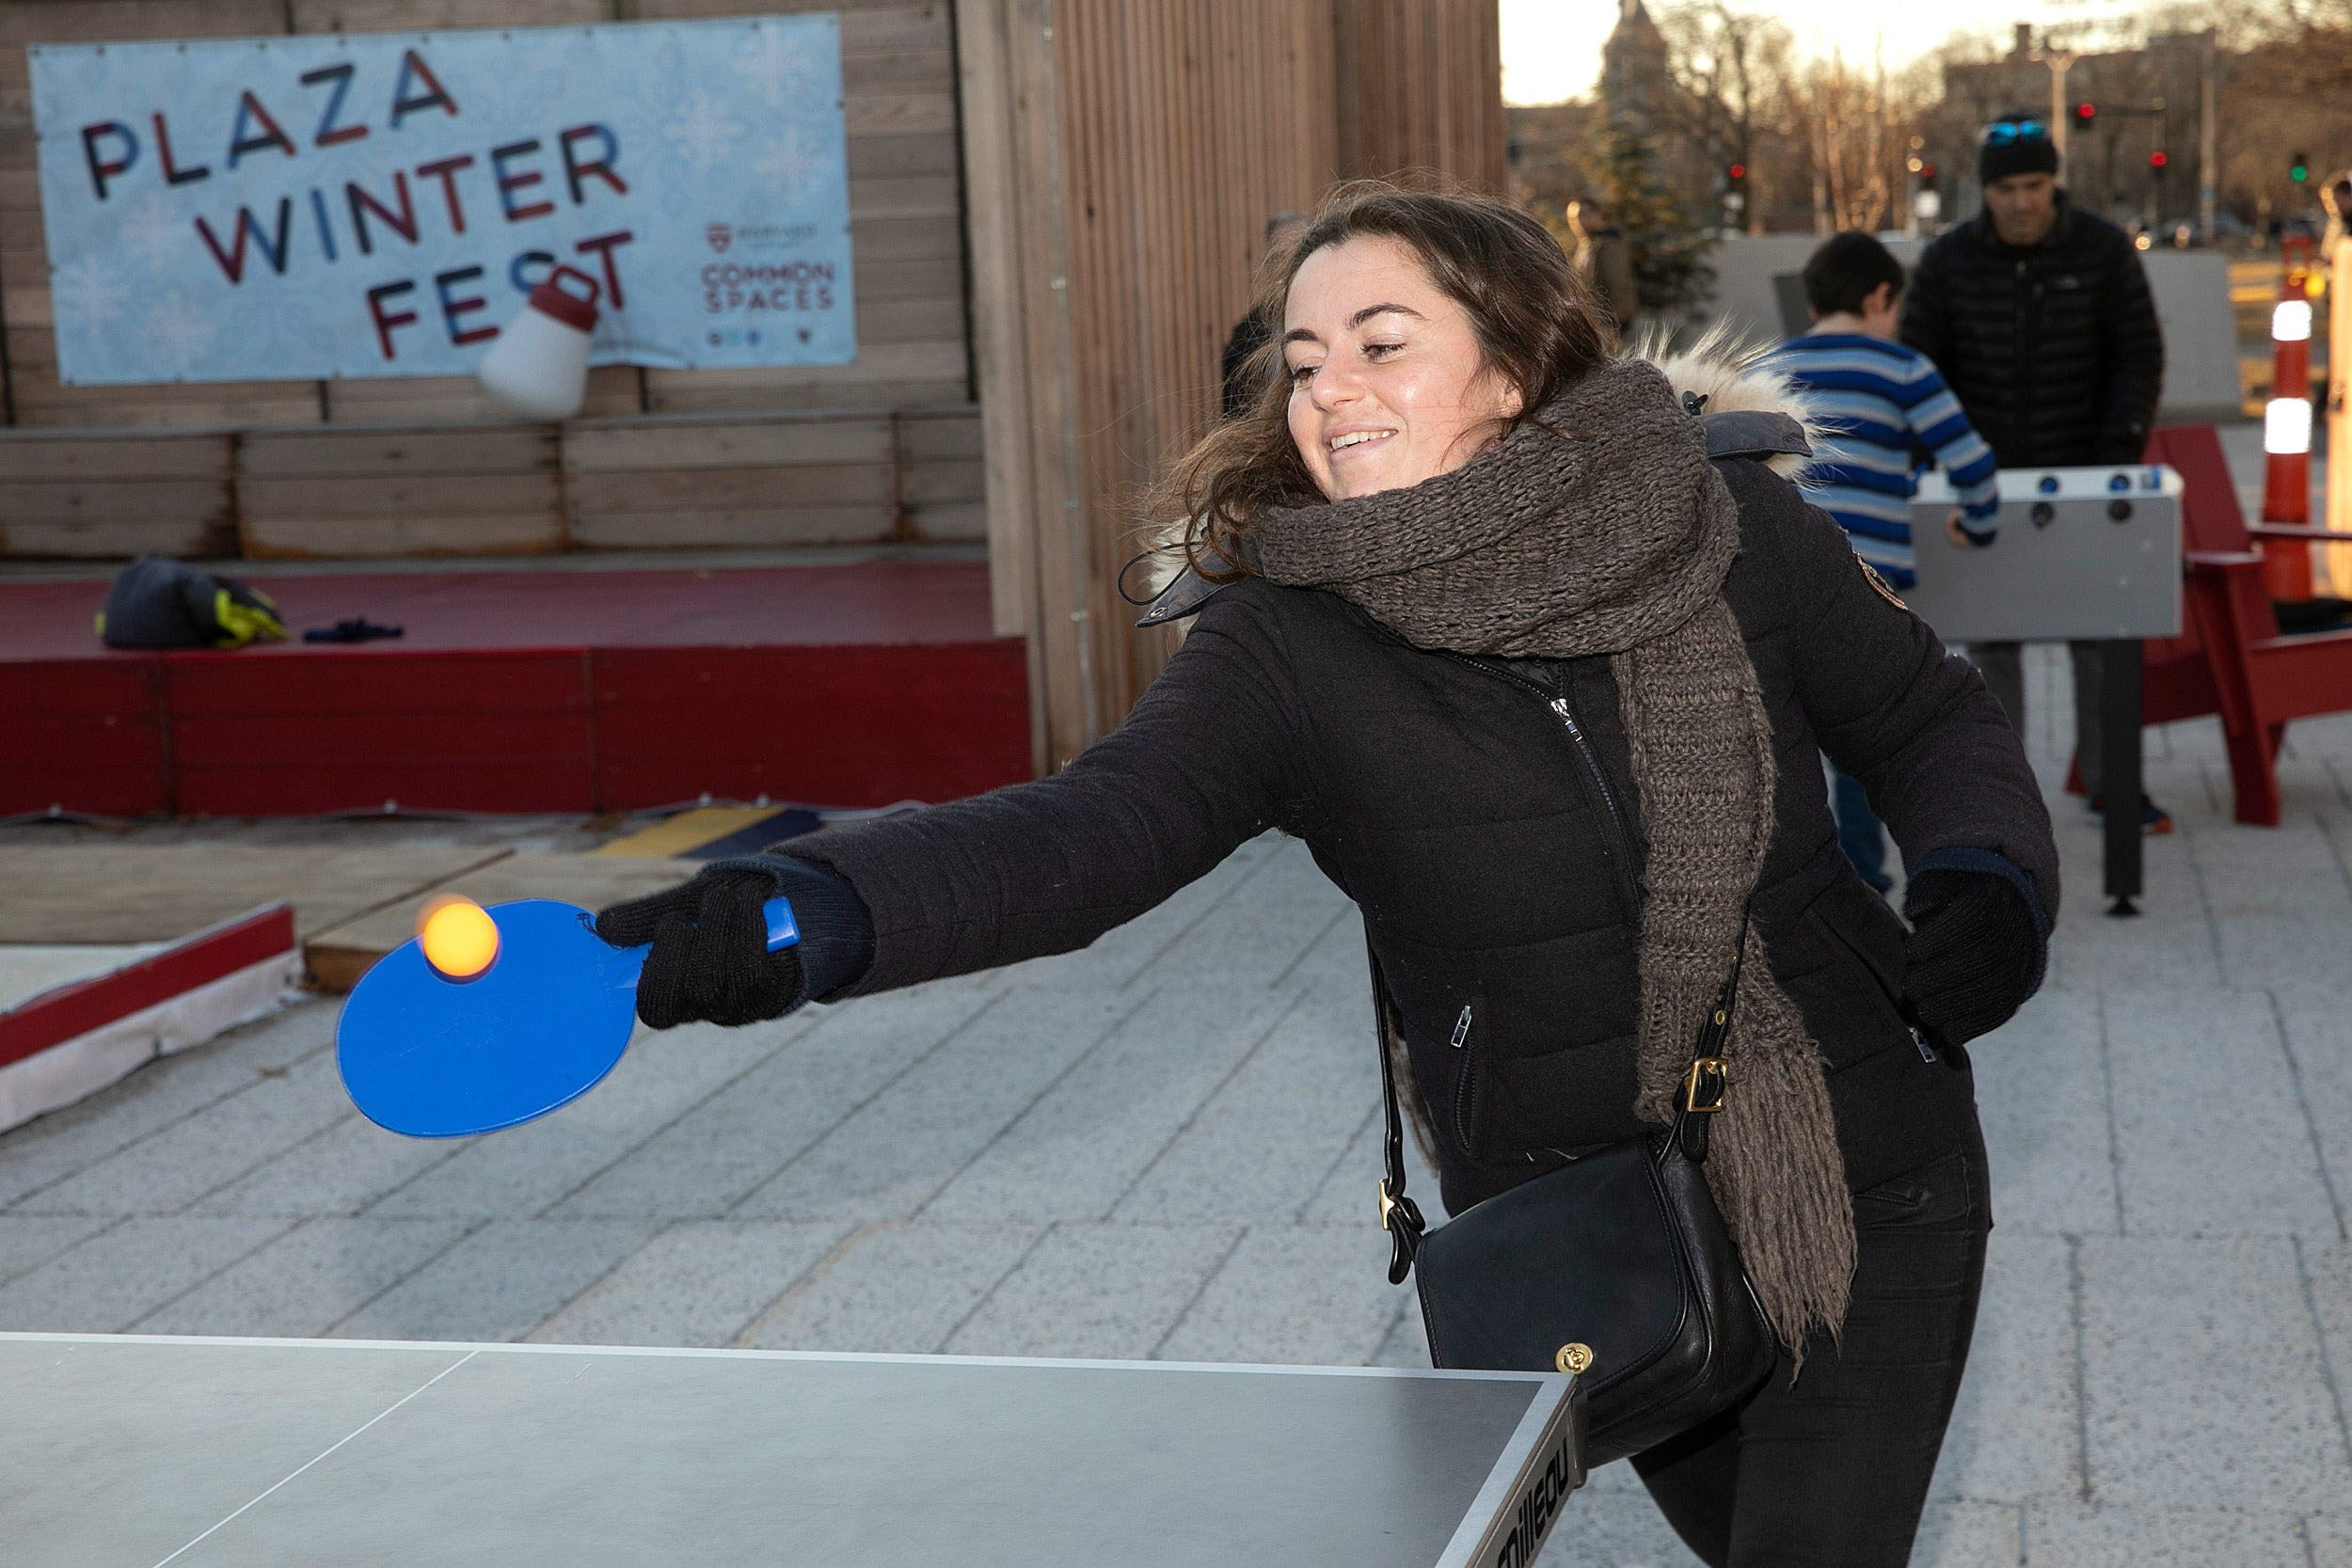 a woman playing ping pong